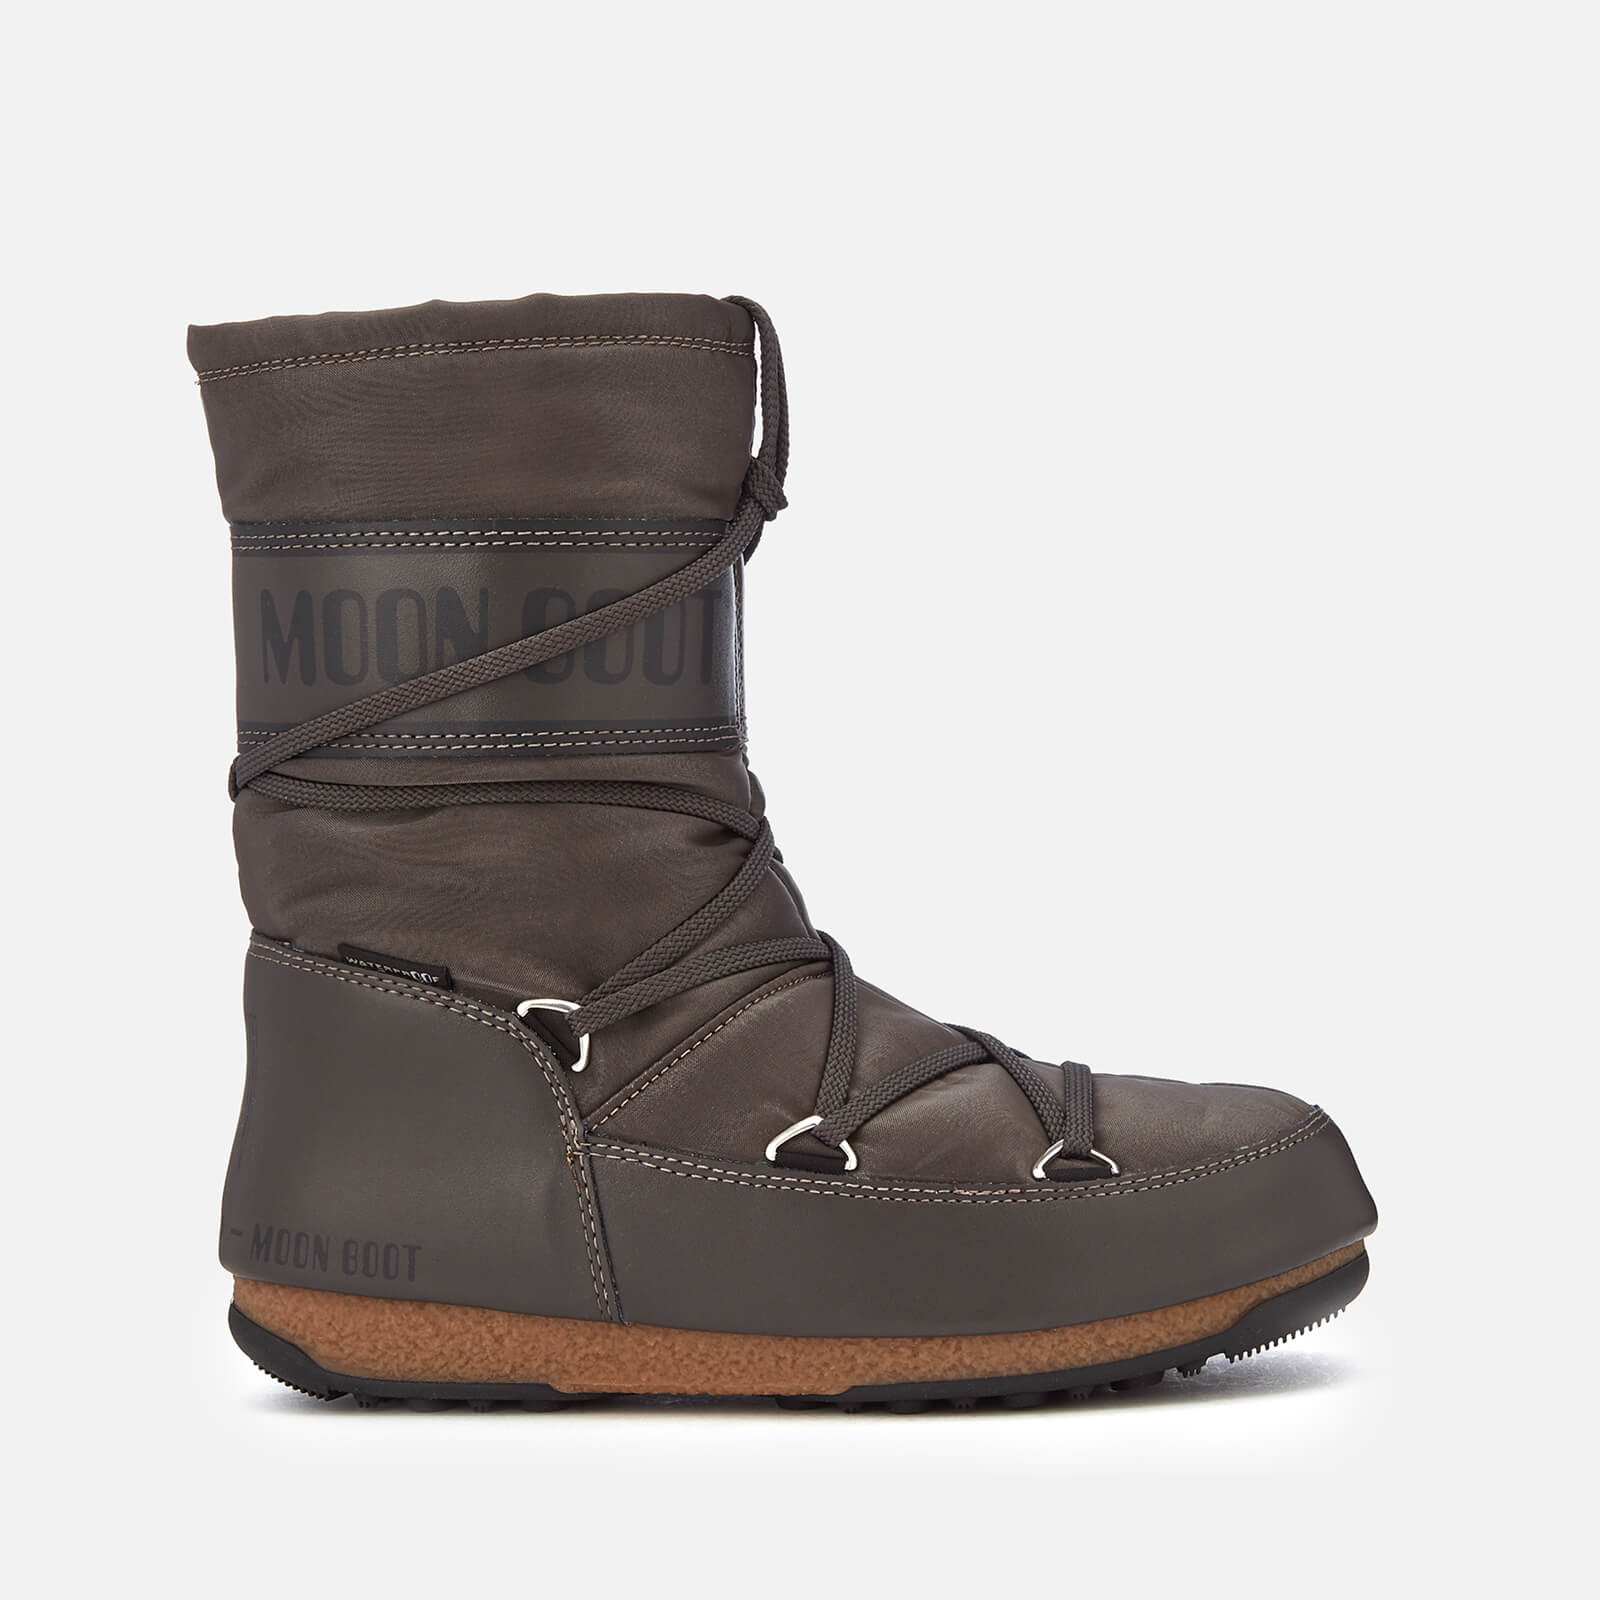 separation shoes abab5 662f8 Moon Boot Women's Soft Shade Mid Waterproof Boots - Anthracite